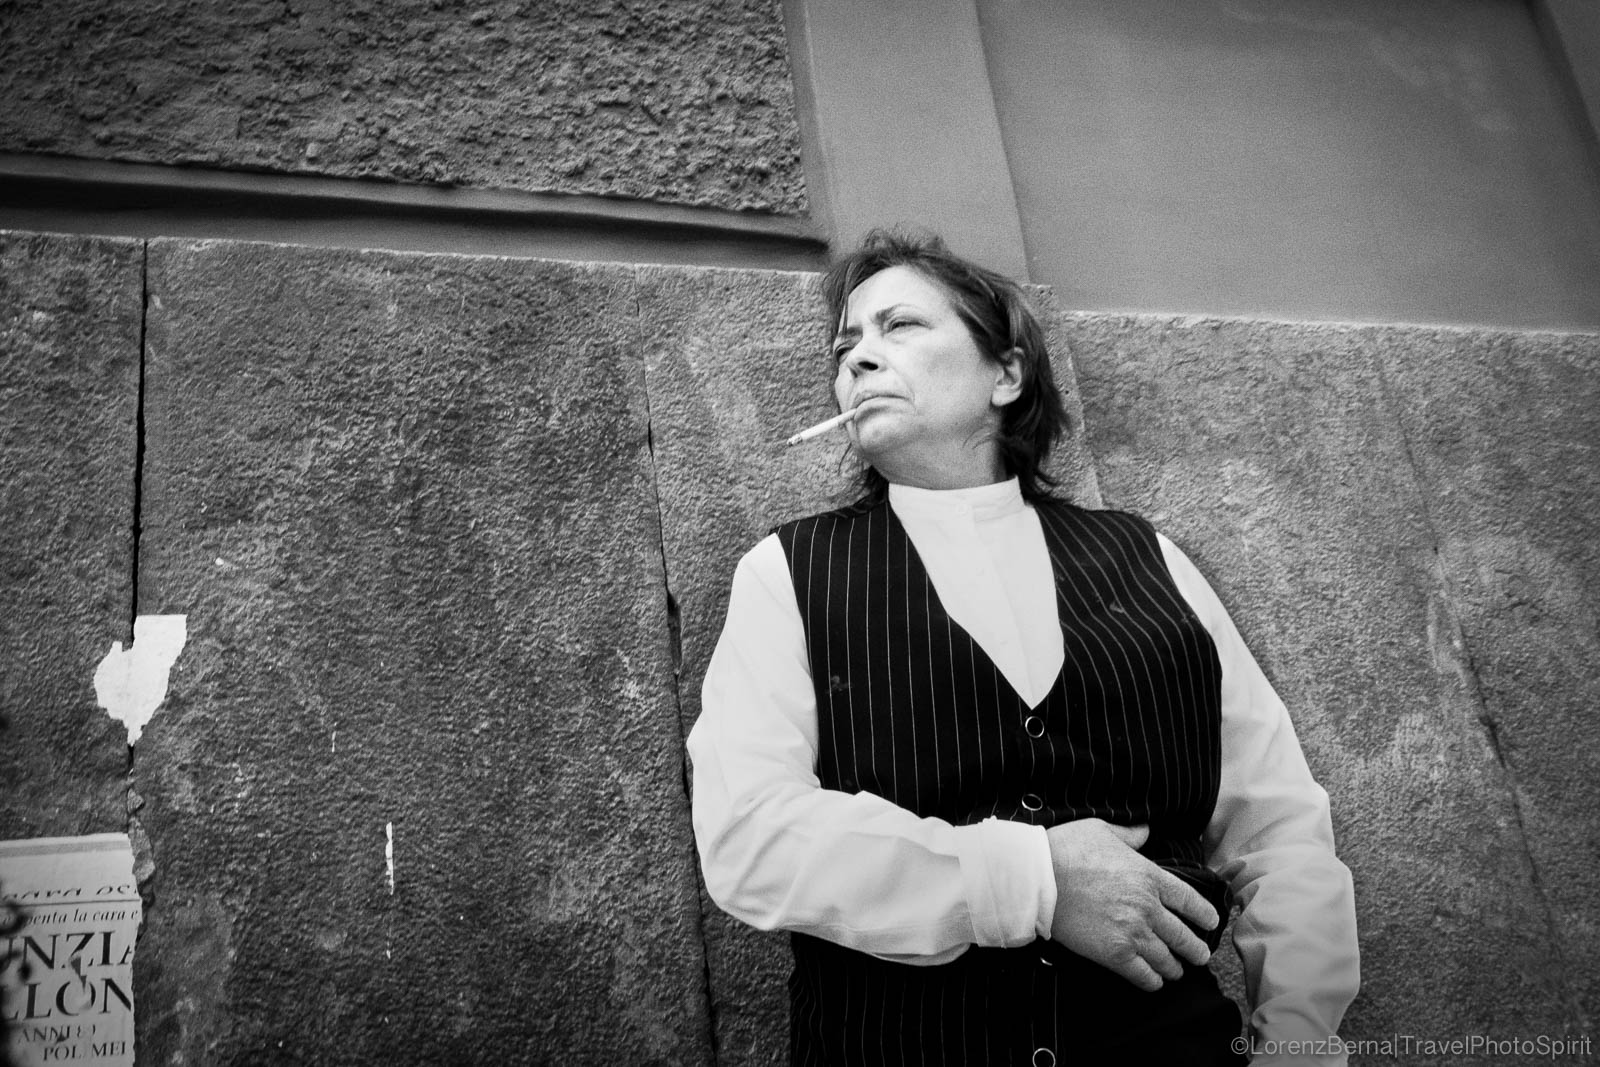 Naples style : a woman is smoking a cigarette alongside a wall, in a masculine outfit and expression - Naples, Italy